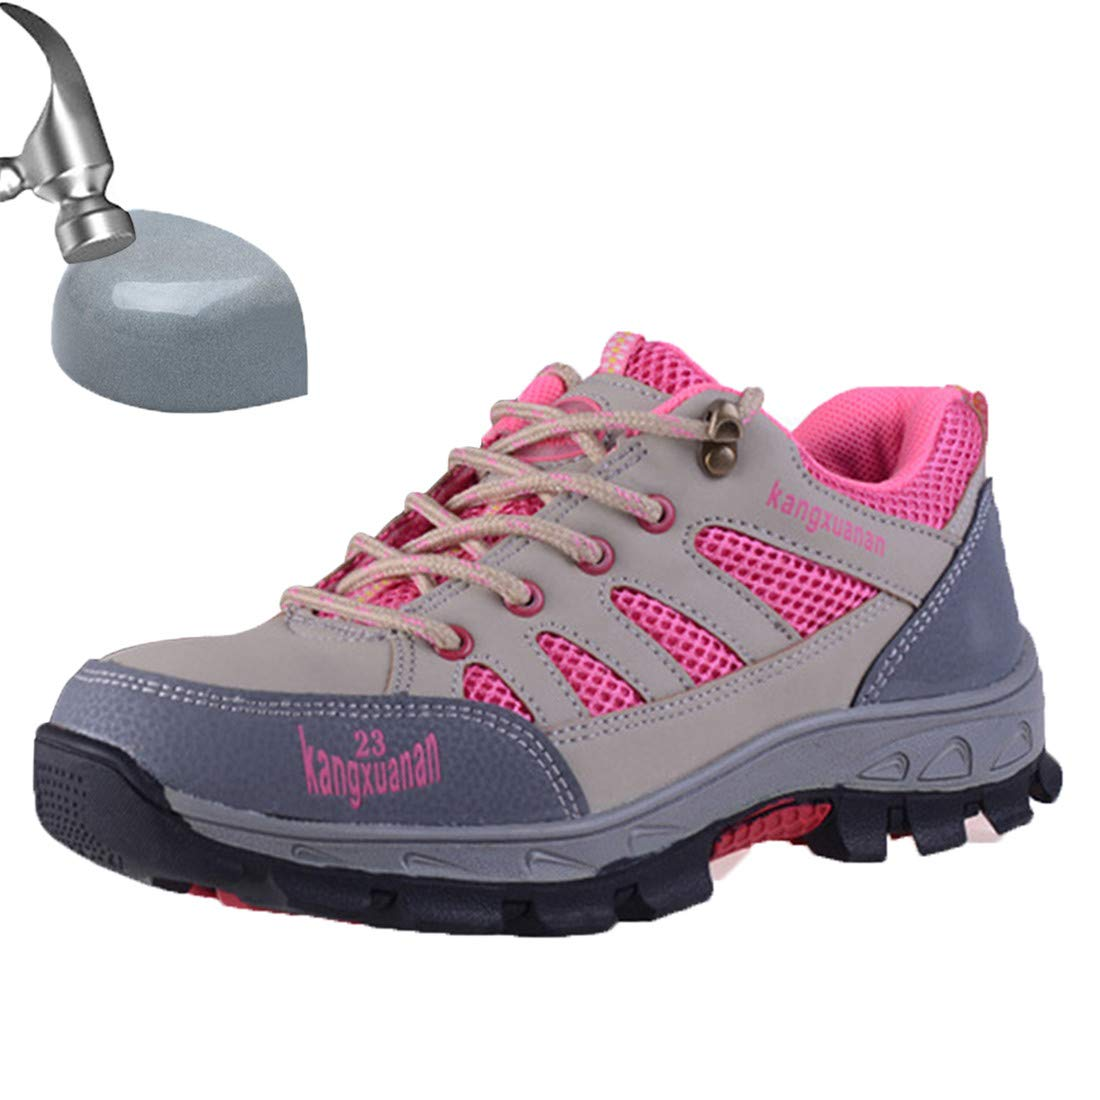 SUADEX Steel Toe Shoes Men, Work Shoes, Safety Shoes, Steel Toe Boots for Men, pink-34